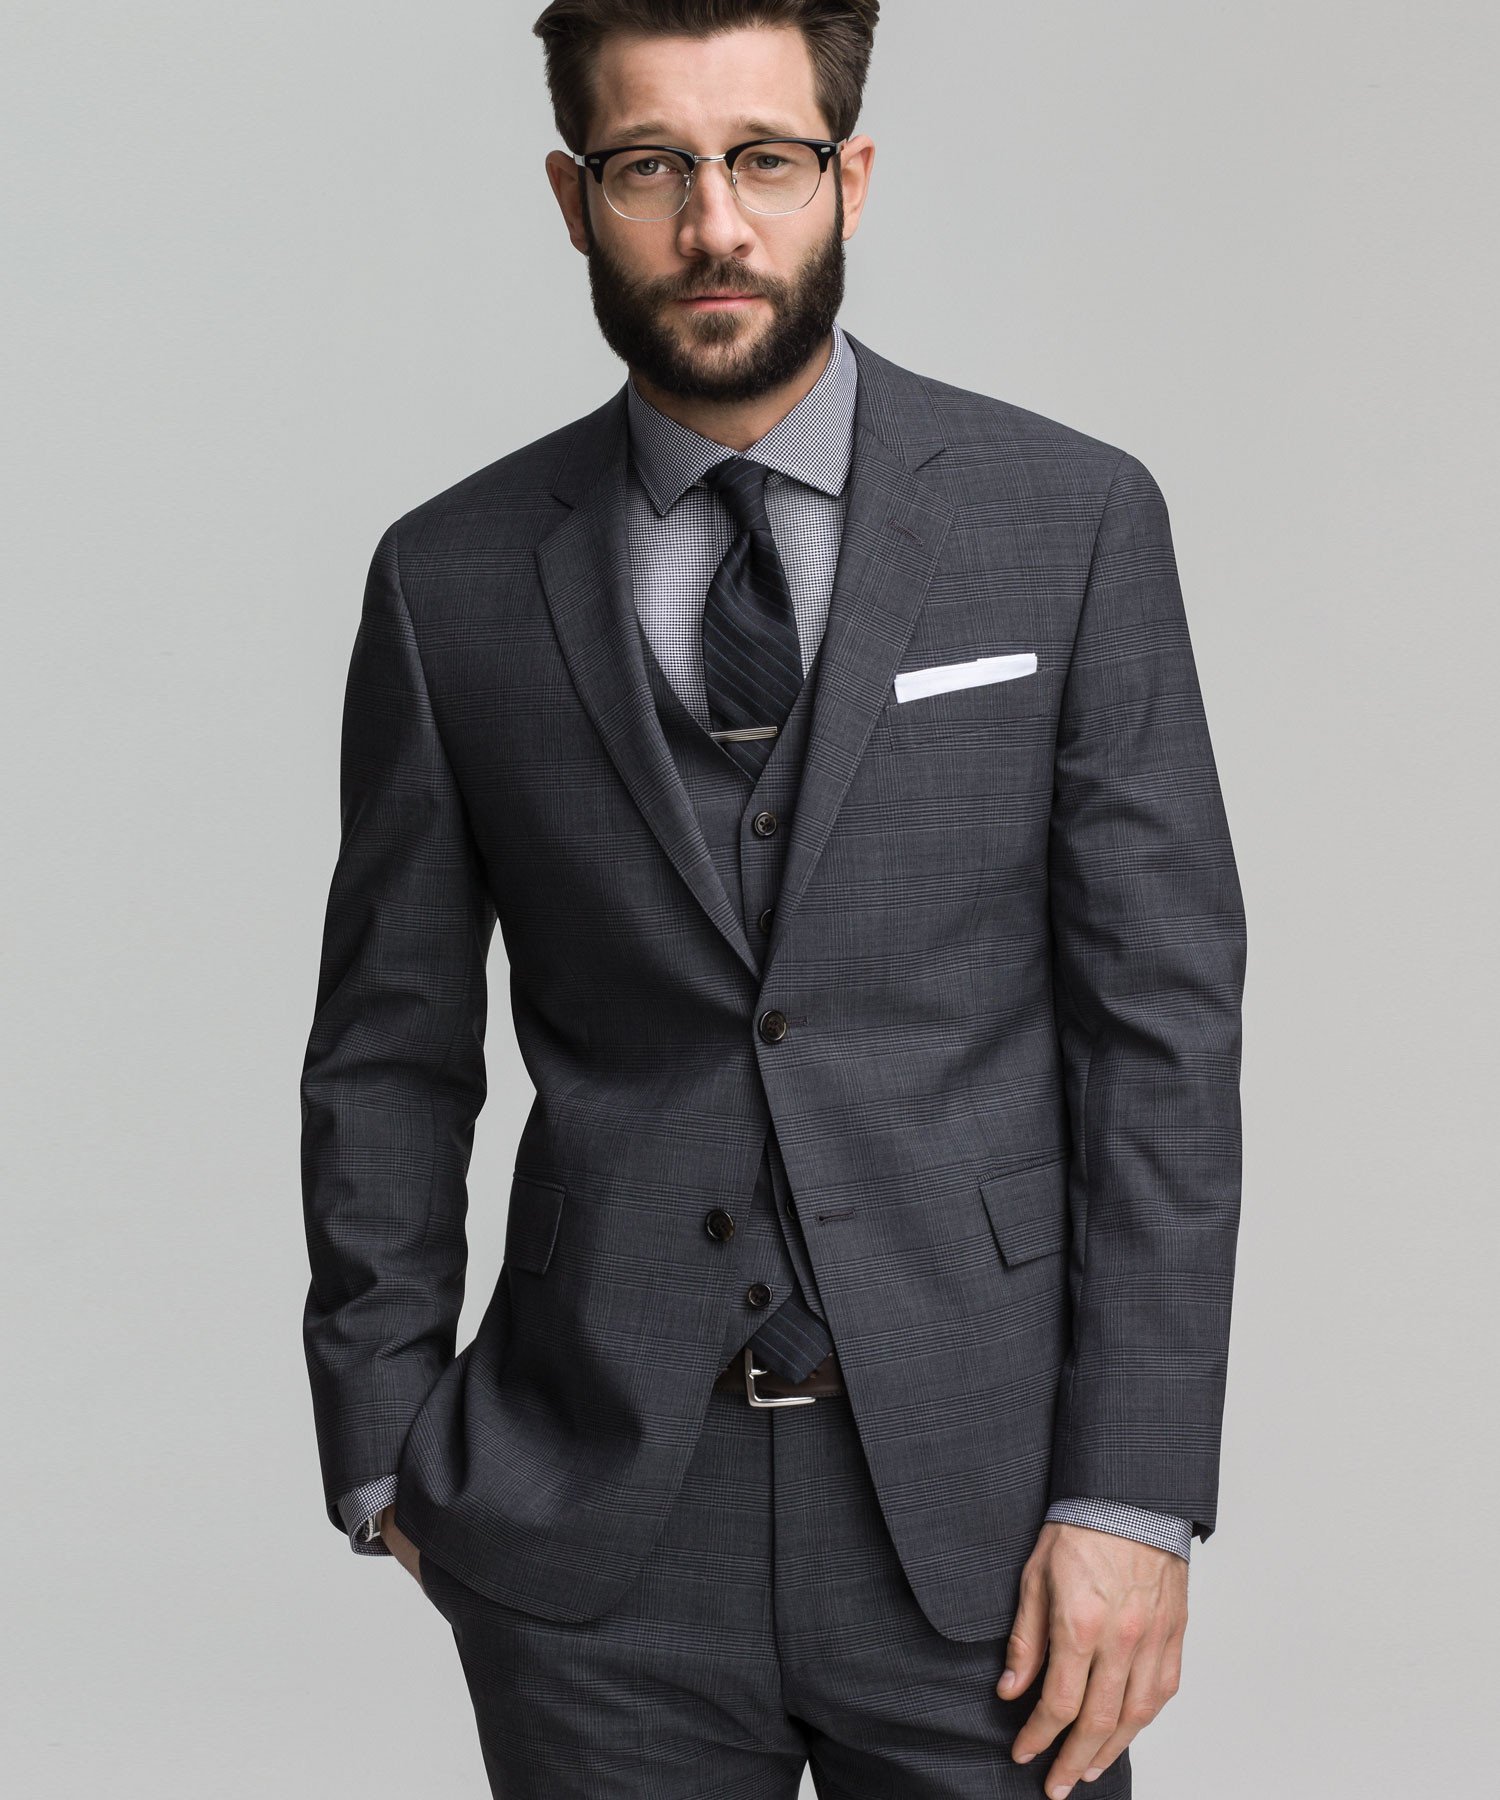 Todd snyder Glen Plaid Mayfair Fit 3 Piece Suit In Dark Grey in ...